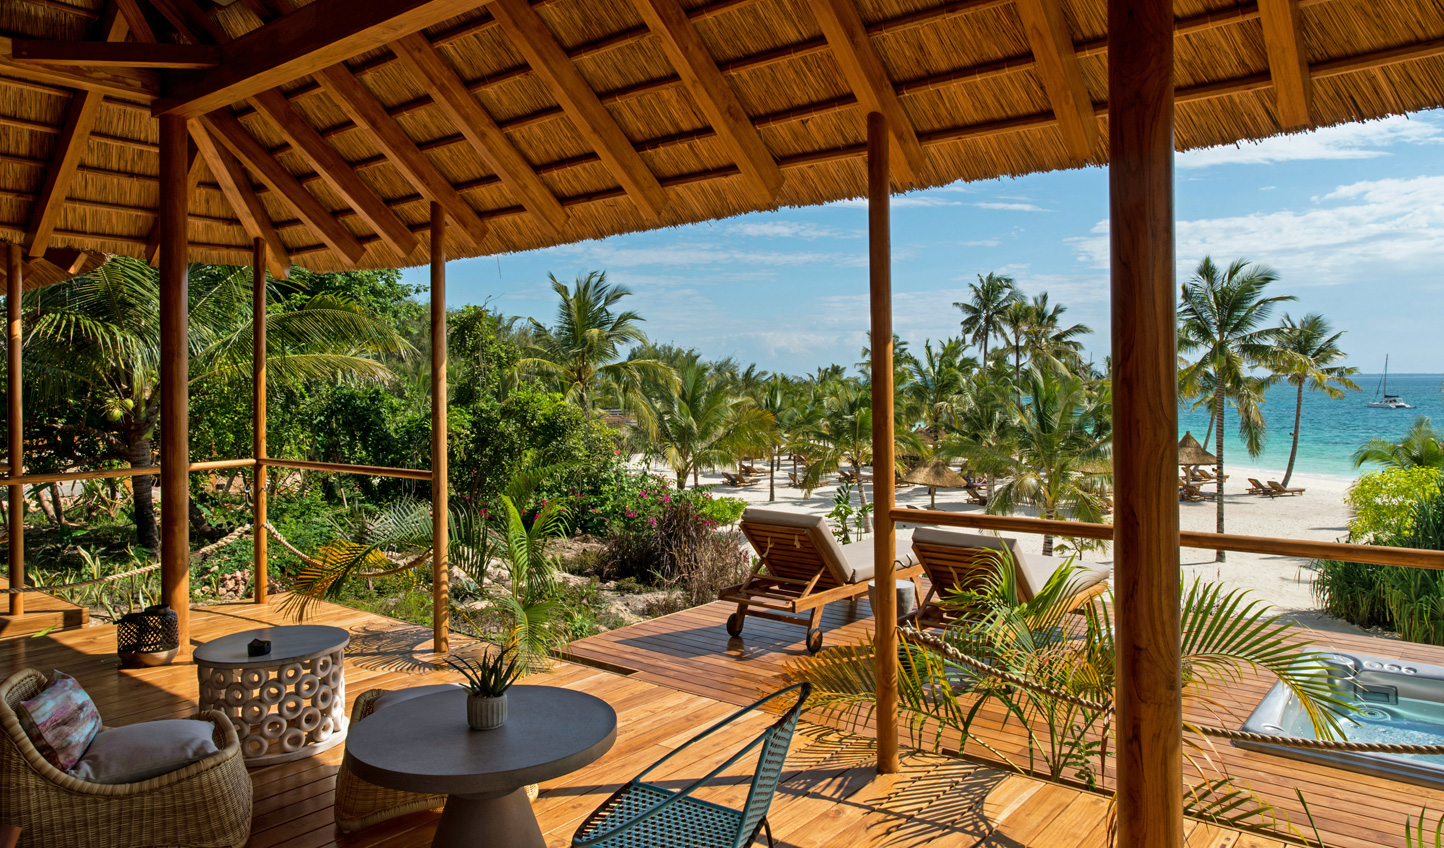 Gaze out over the Indian Ocean from your beachfront villa